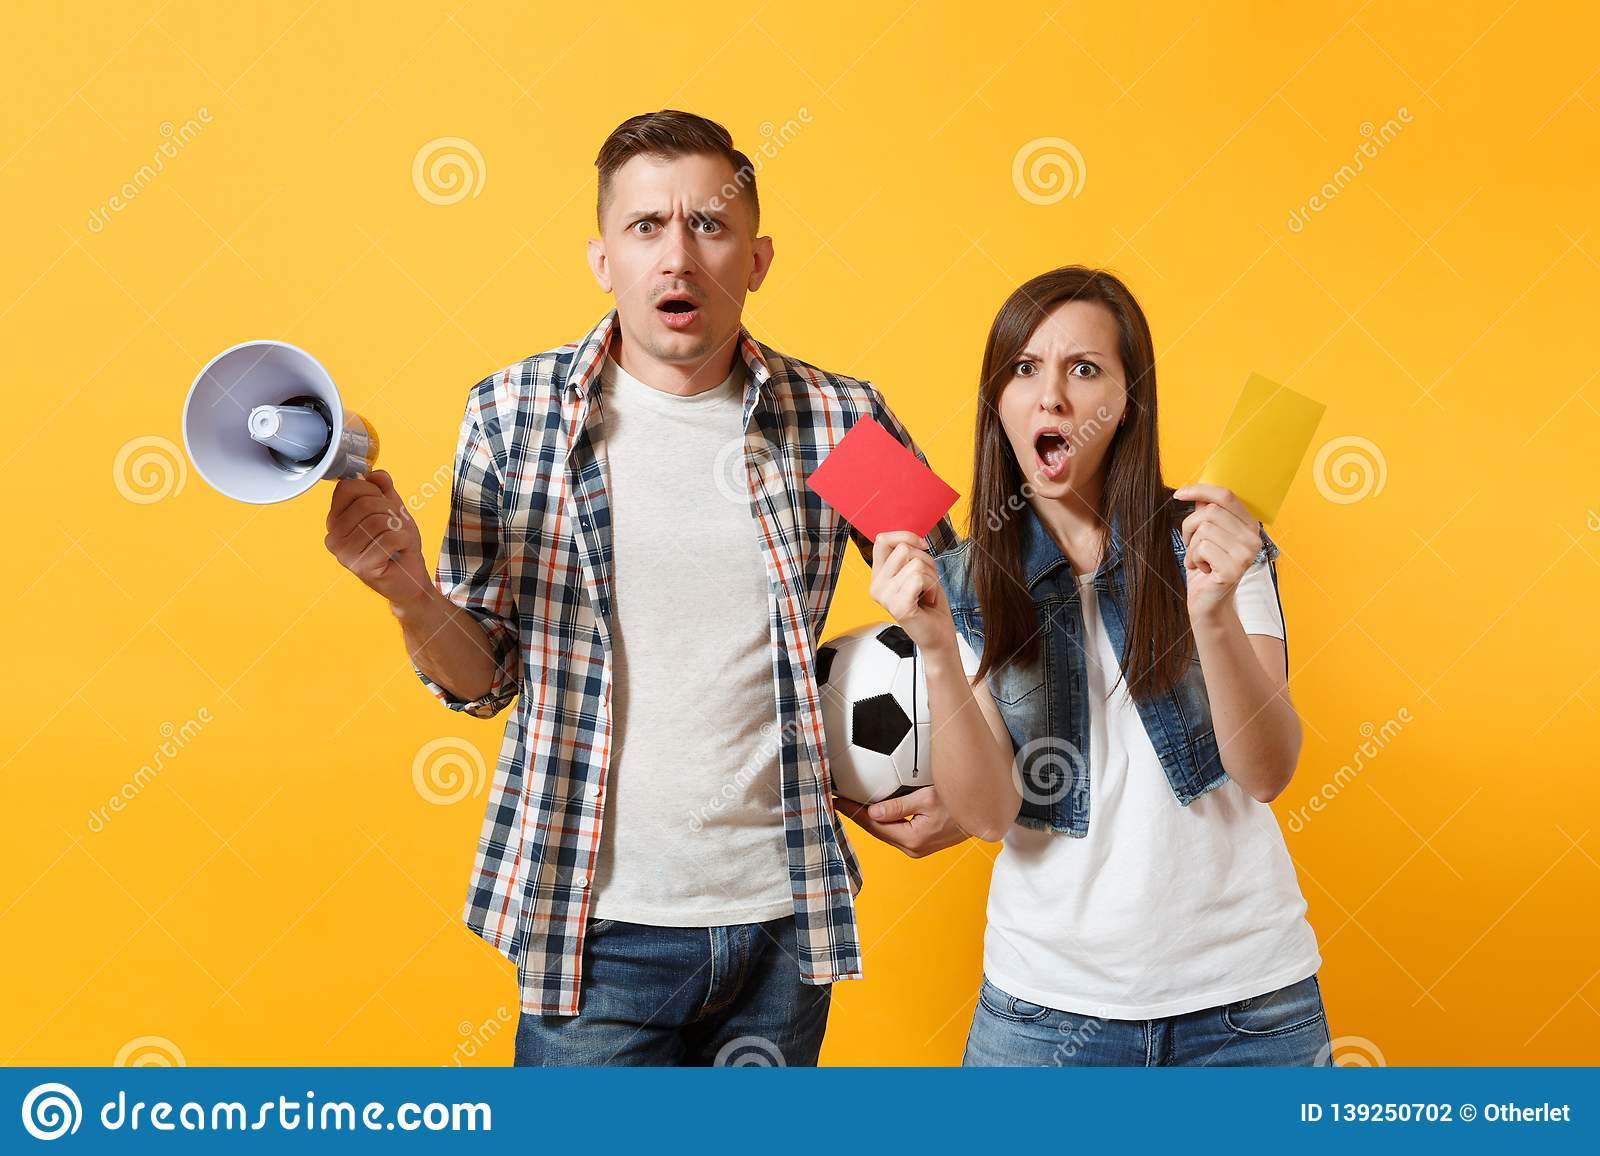 Expessive fun crazy couple, woman man football fans screaming, upset of loss, goal of favorite team with soccer ball